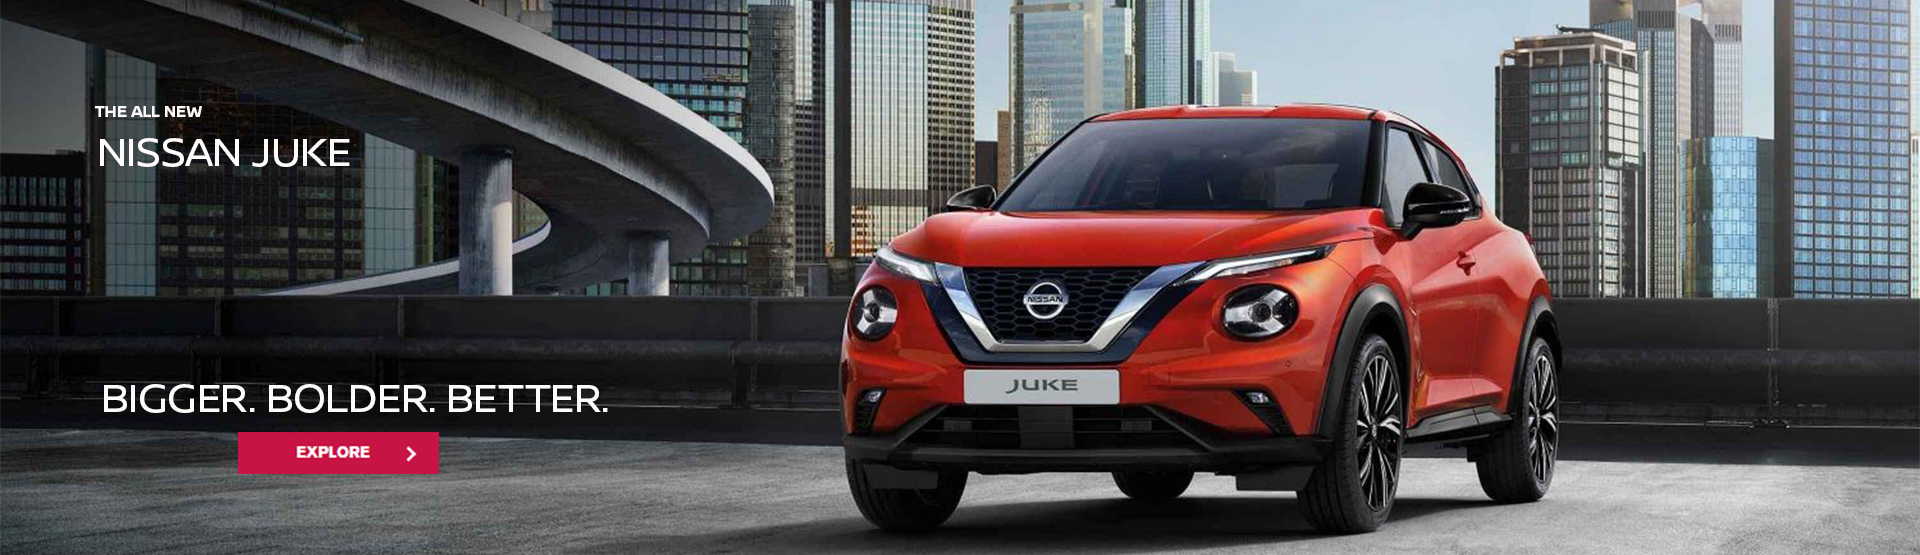 All New Nissan Juke. Bigger. Bolder. Better. Explore now